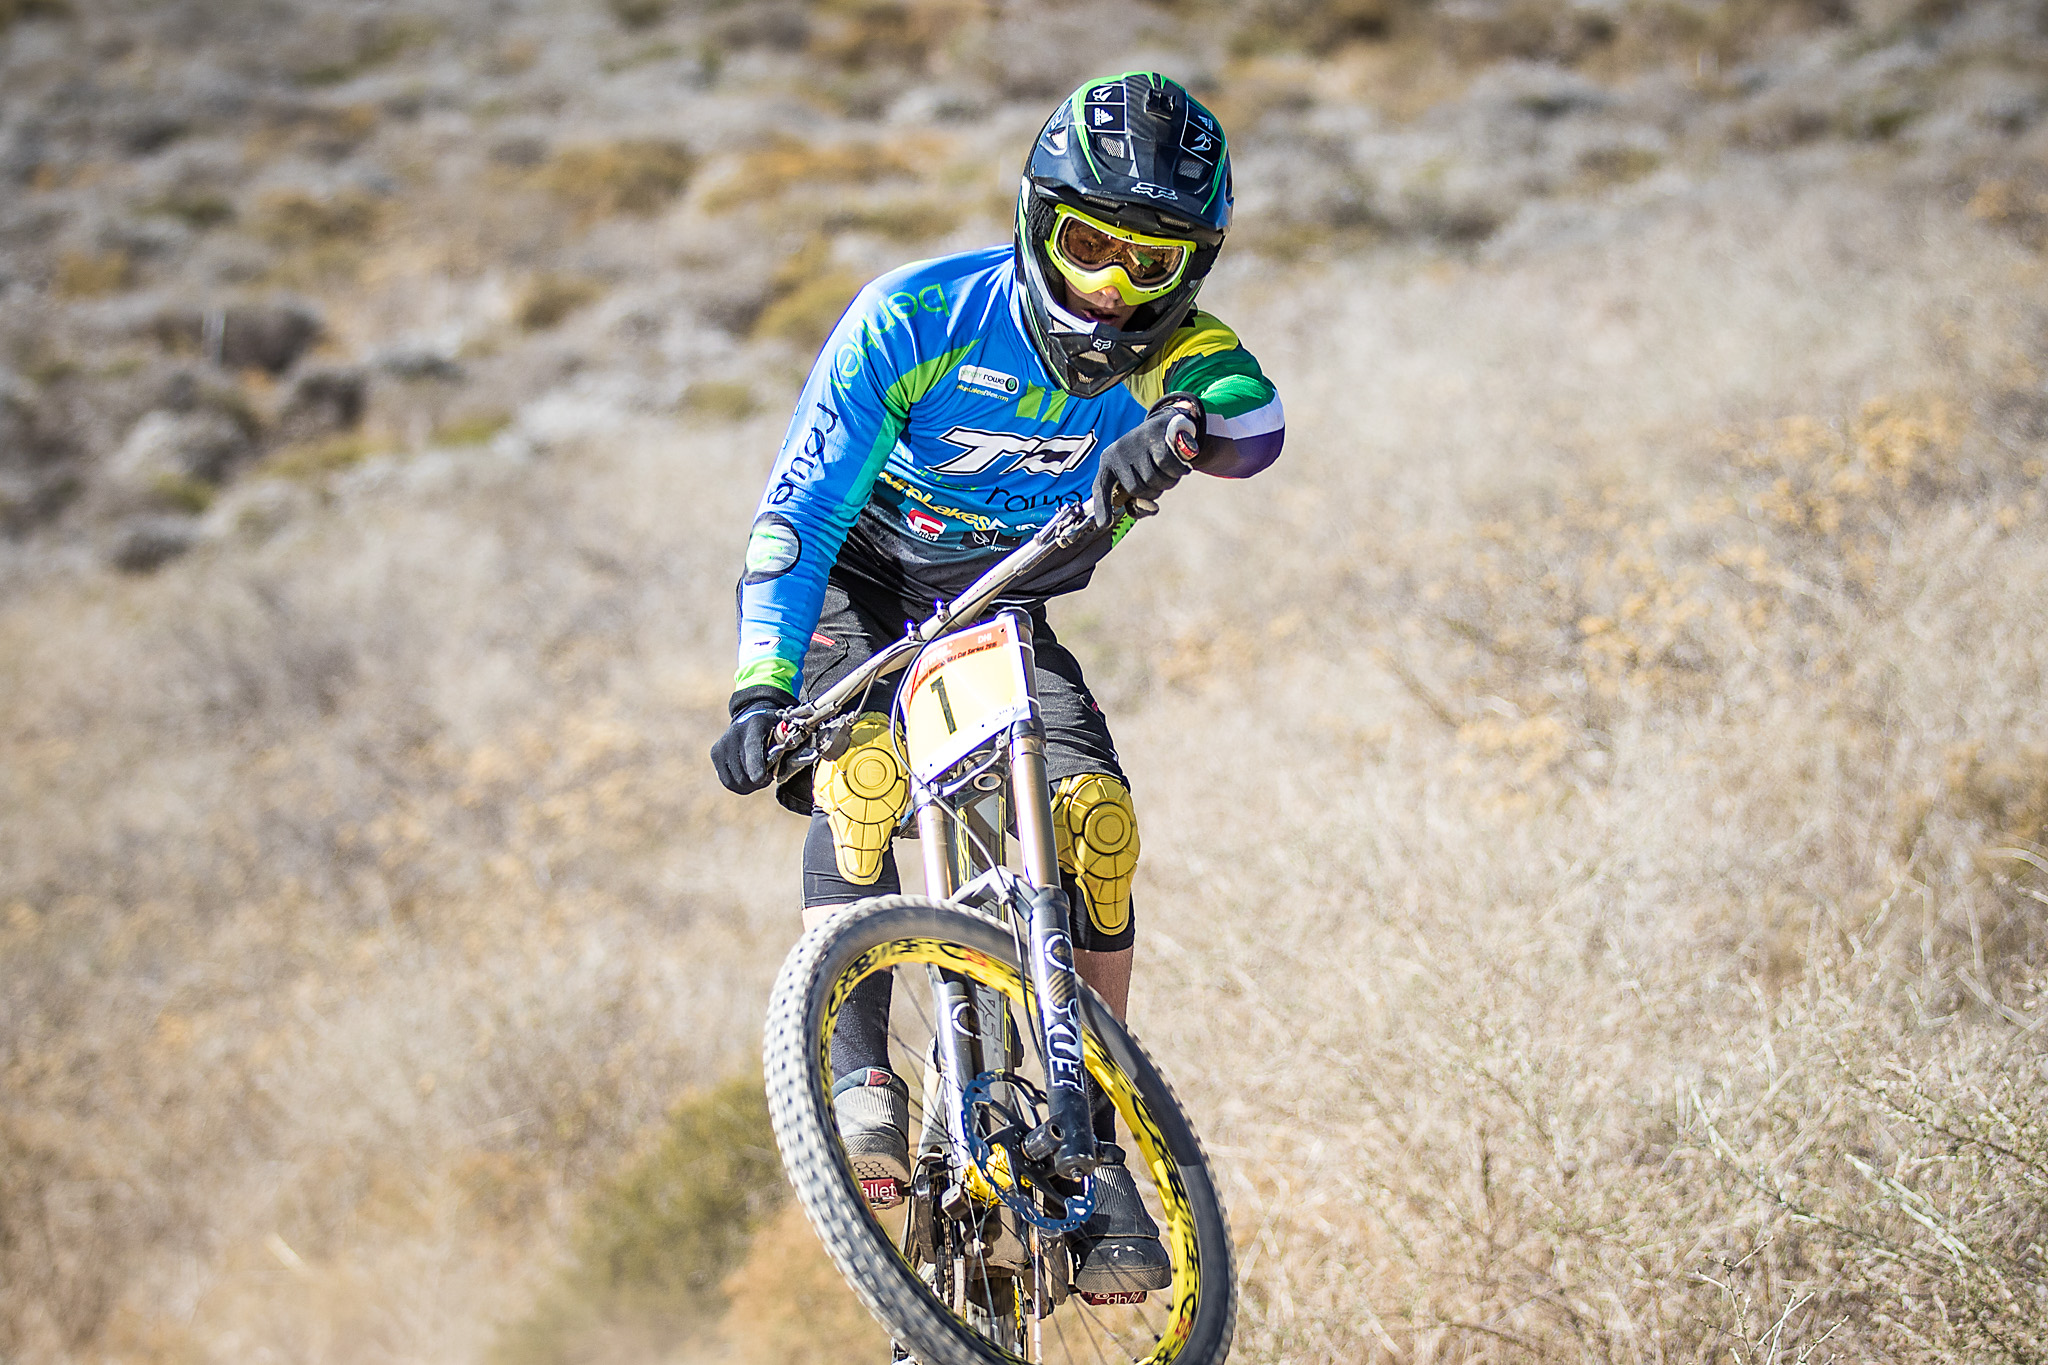 Tiaan Odendaal, who came in thirdplace in the Men's Elite race at t he Stihl 2015 SA MTB Cup Series which took place in Contermanskloof in the Western Cape on Sunday 22 February 2015   .  Chris Hitchcock | PhotoSport